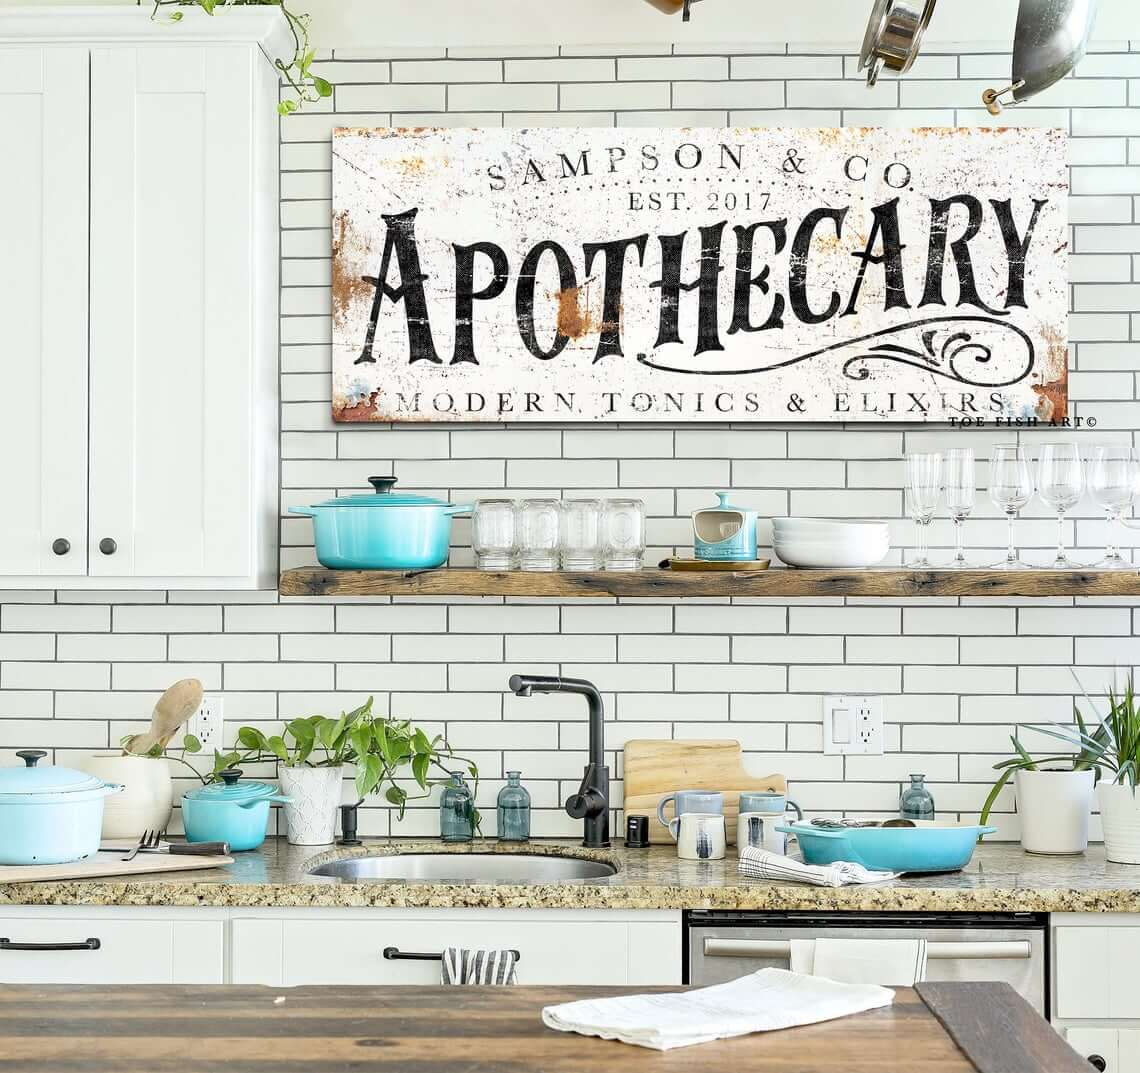 Vintage and Antique Apothecary Interior Design Sign